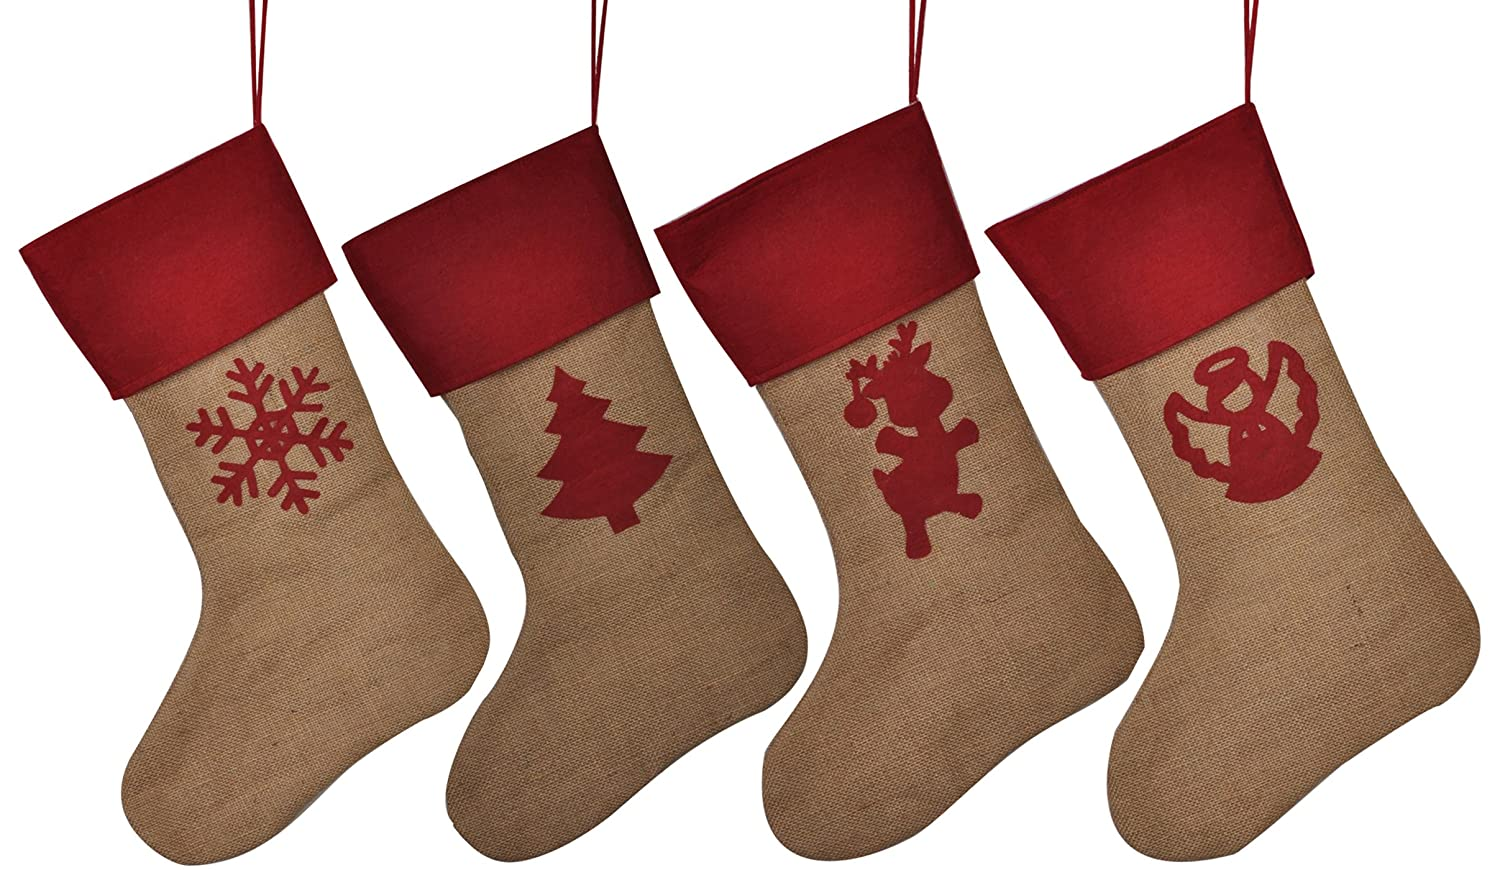 Amazon.com: HUAN XUN Customized Name Personalized Christmas Stockings Best Gifts Bags Fireplace Decor for Home Familys: Jewelry